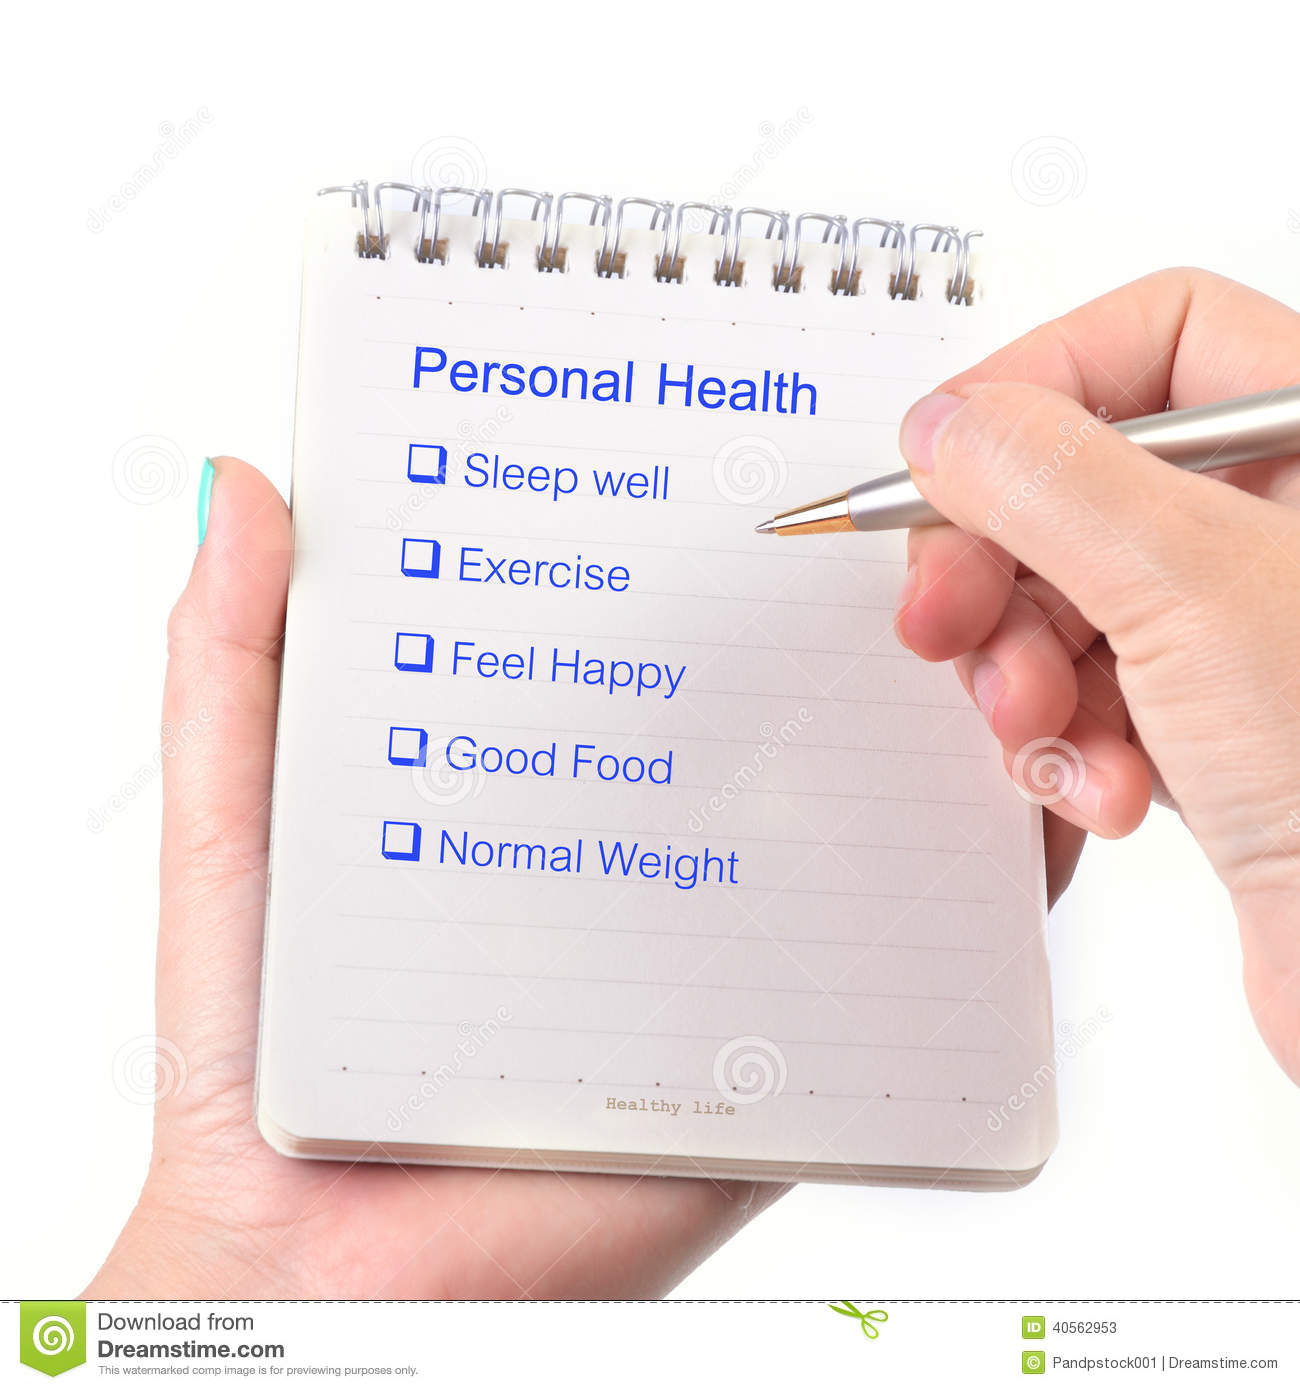 Personal Health: Personal Health Check Stock Photos